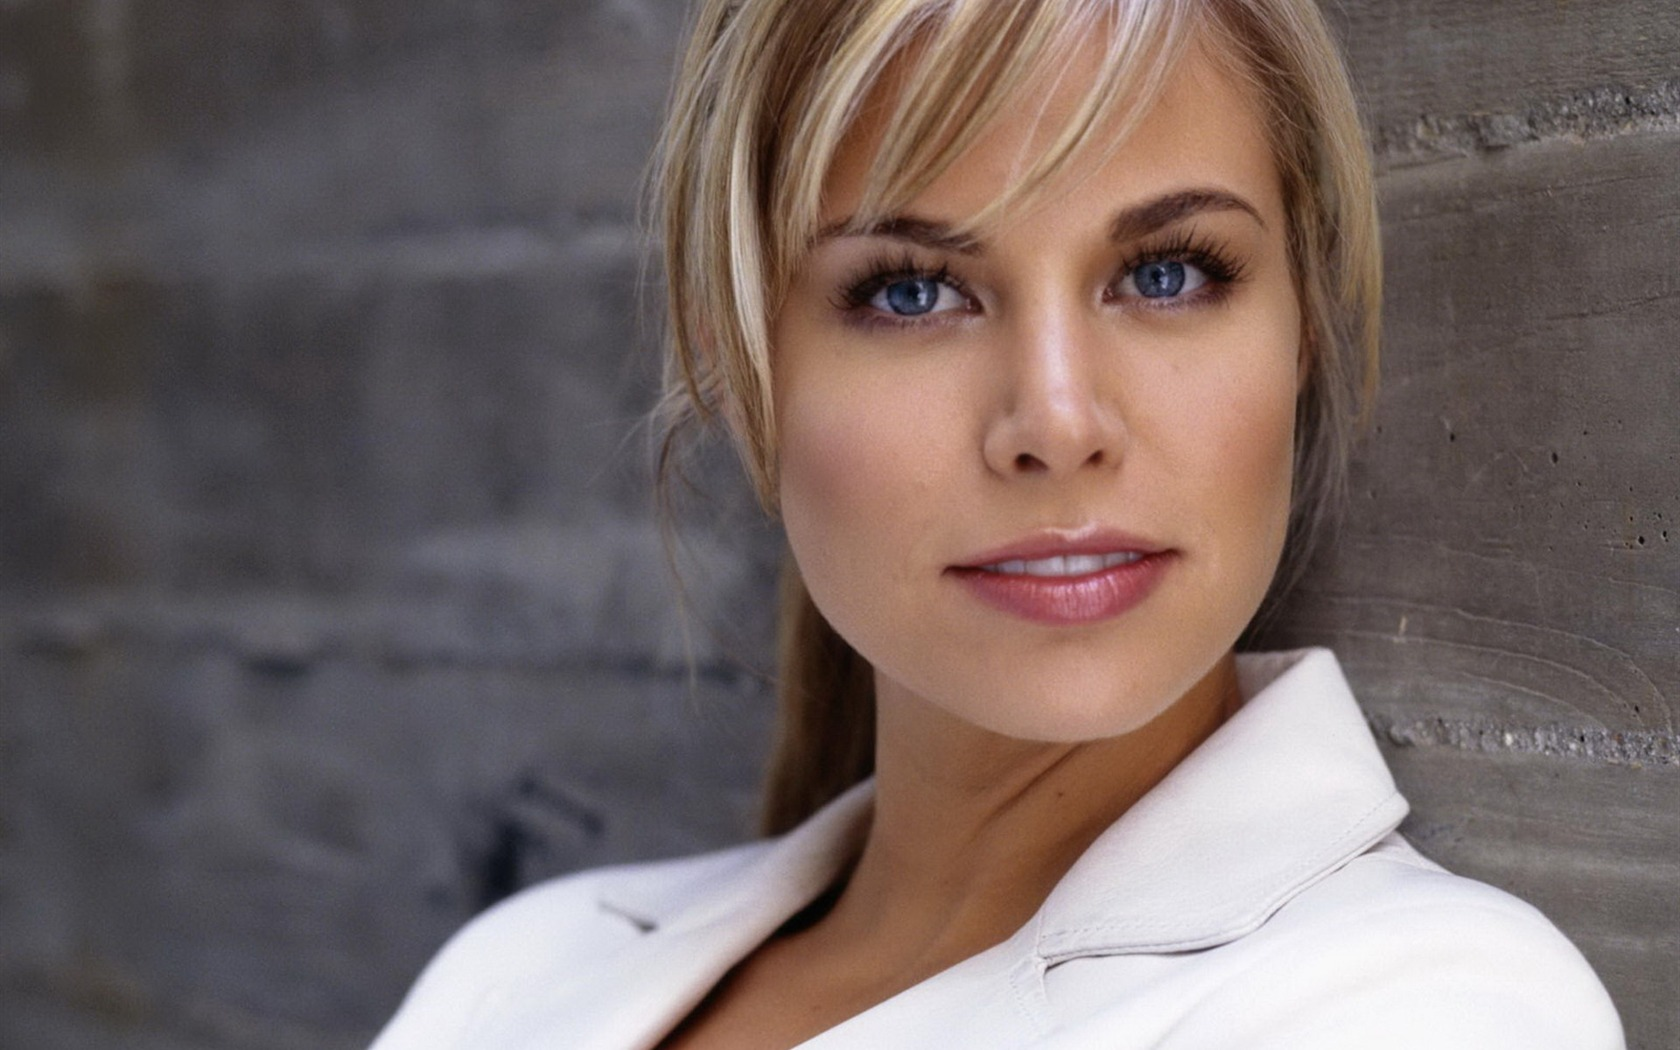 brooke burns csi miamibrooke burns instagram, brooke burns husband, brooke burns 2017, brooke burns daughter, brooke burns csi miami, brooke burns wiki, brooke burns twitter, brooke burns 2016, brooke burns, brooke burns imdb, brooke burns baywatch, brooke burns shallow hal, brooke burns dog eat dog, brooke burns 2015, brooke burns facebook, brooke burns julian mcmahon, brooke burns height, brooke burns net worth, brooke burns hot, brooke burns measurements